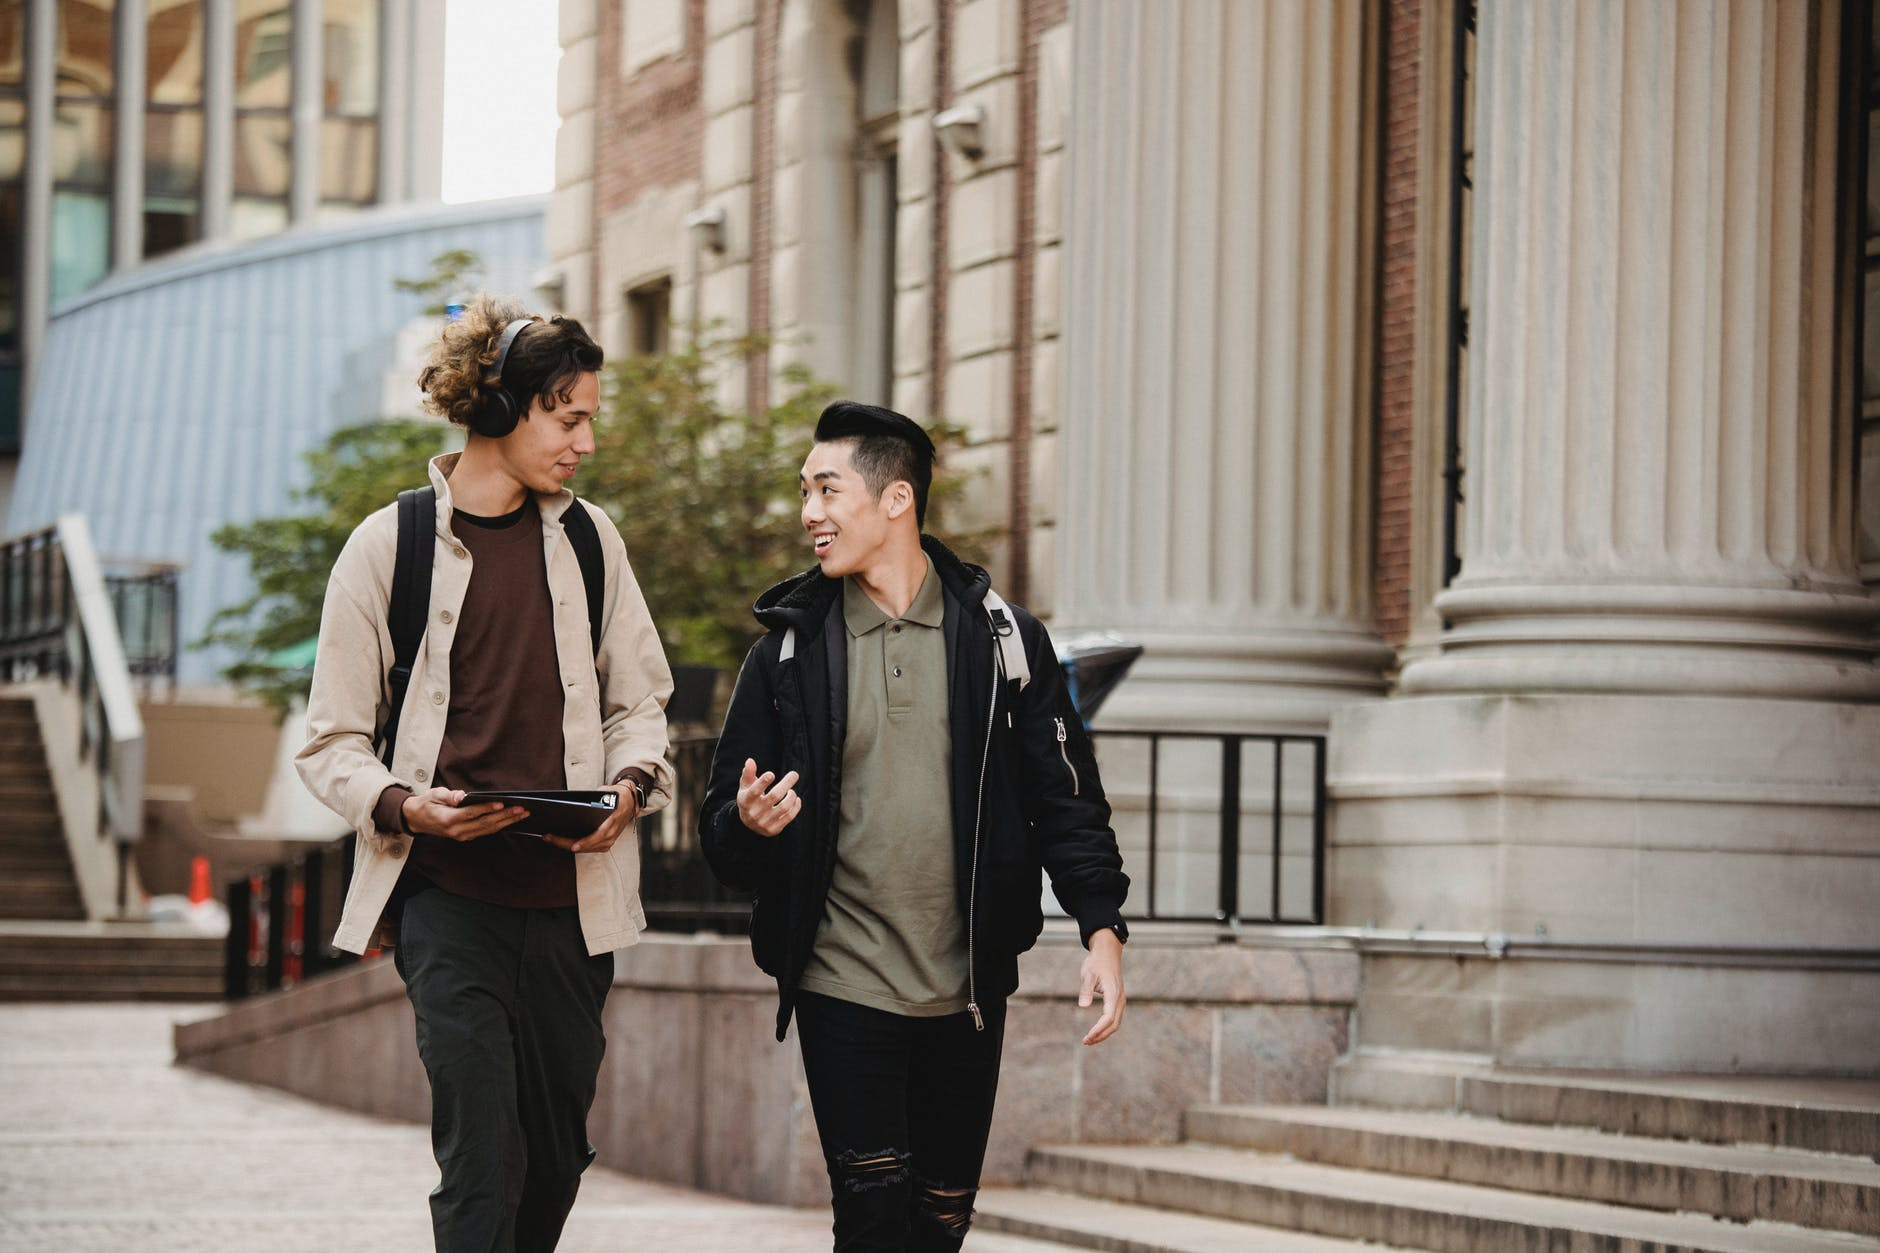 Two students talking and walking around campus | Source: Pexels